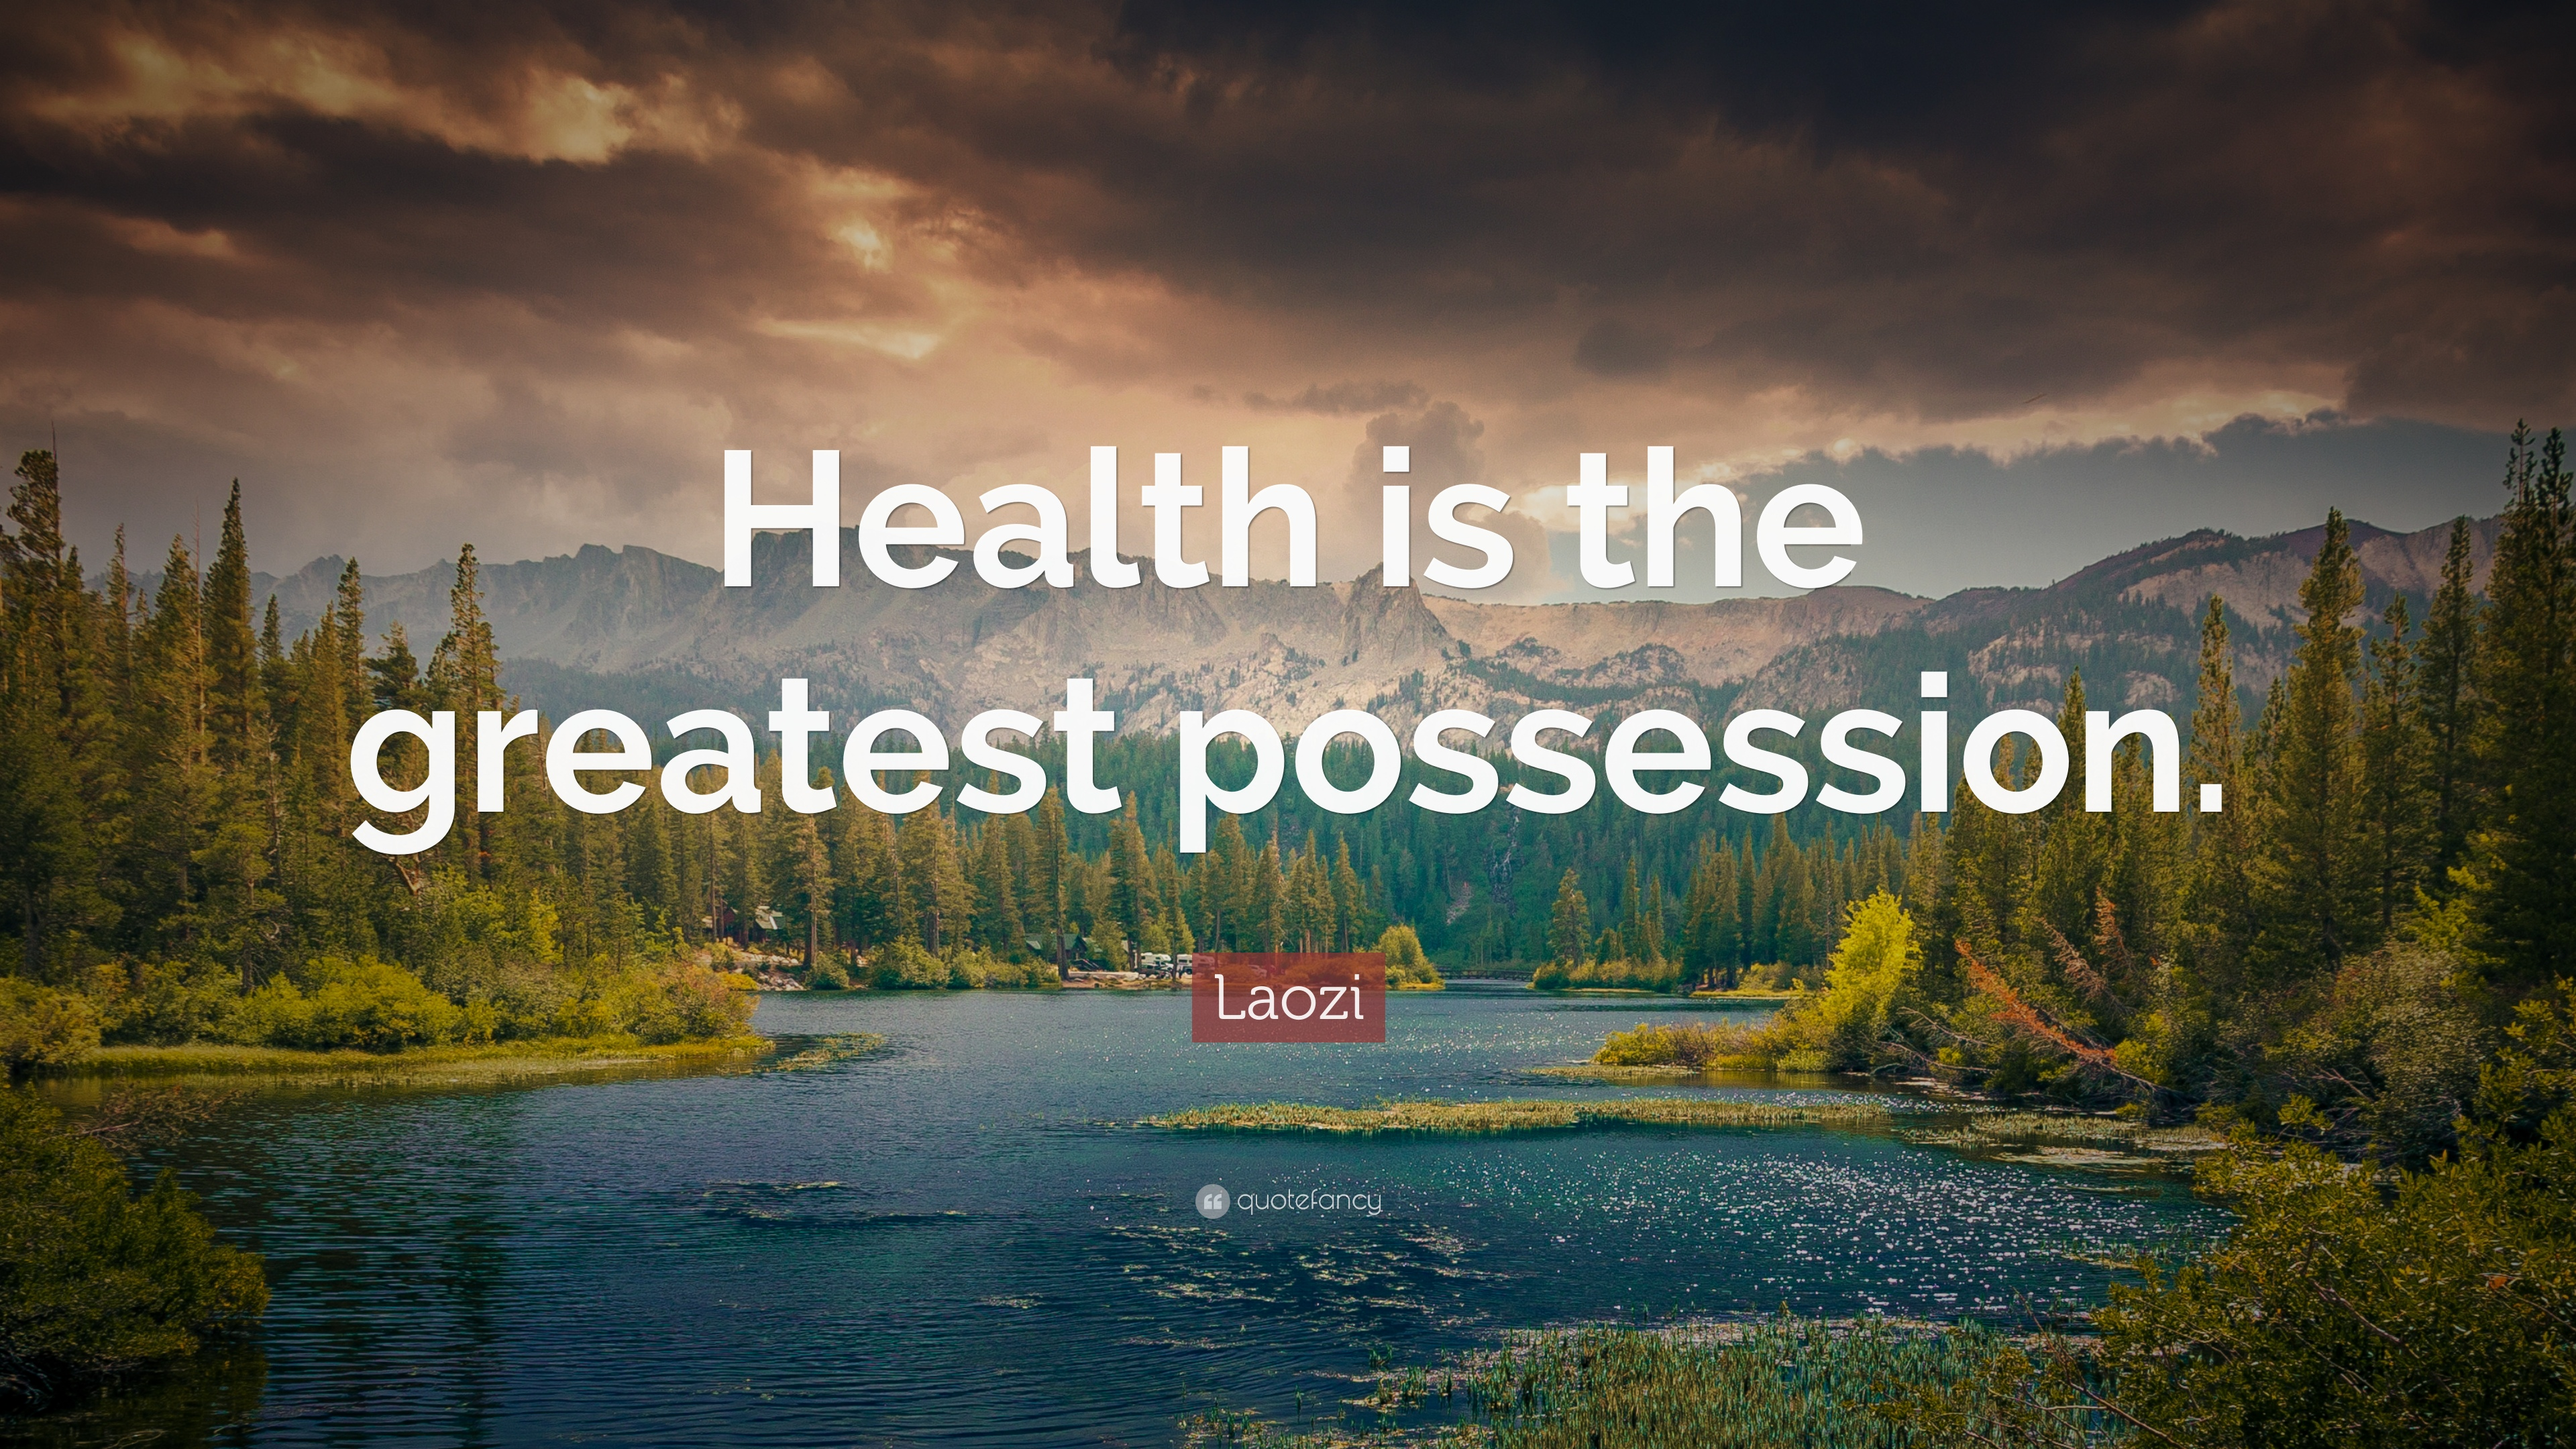 49243-Laozi-Quote-Health-is-the-greatest-possession.jpg